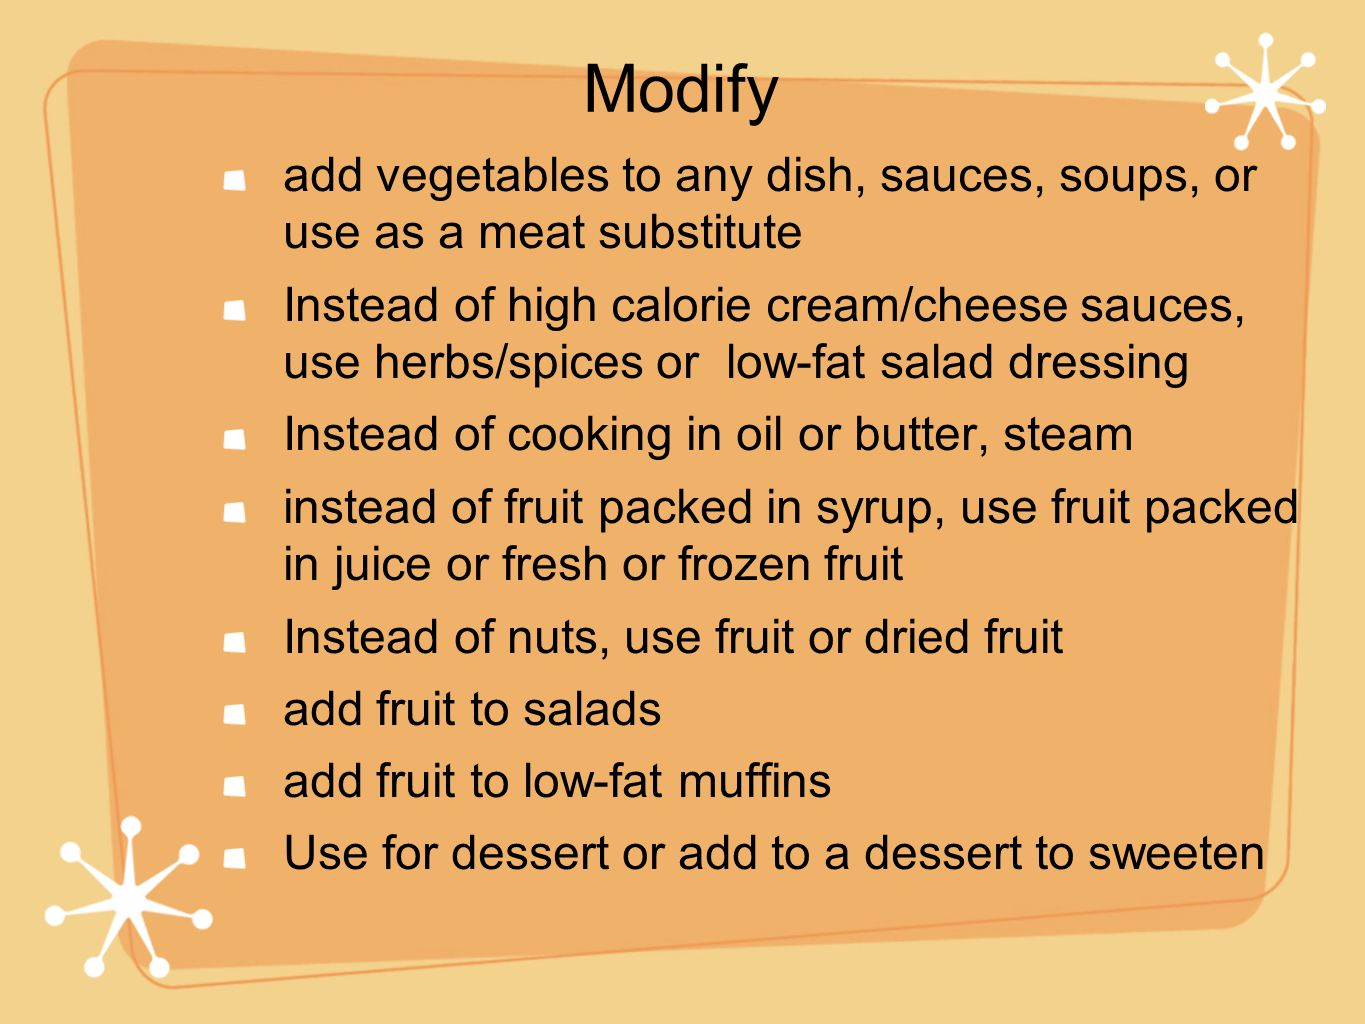 add vegetables to any dish, sauces, soups, or use as a meat substitute Instead of high calorie cream/cheese sauces, use herbs/spices or low-fat salad dressing Instead of cooking in oil or butter, steam instead of fruit packed in syrup, use fruit packed in juice or fresh or frozen fruit Instead of nuts, use fruit or dried fruit add fruit to salads add fruit to low-fat muffins Use for dessert or add to a dessert to sweeten Modify